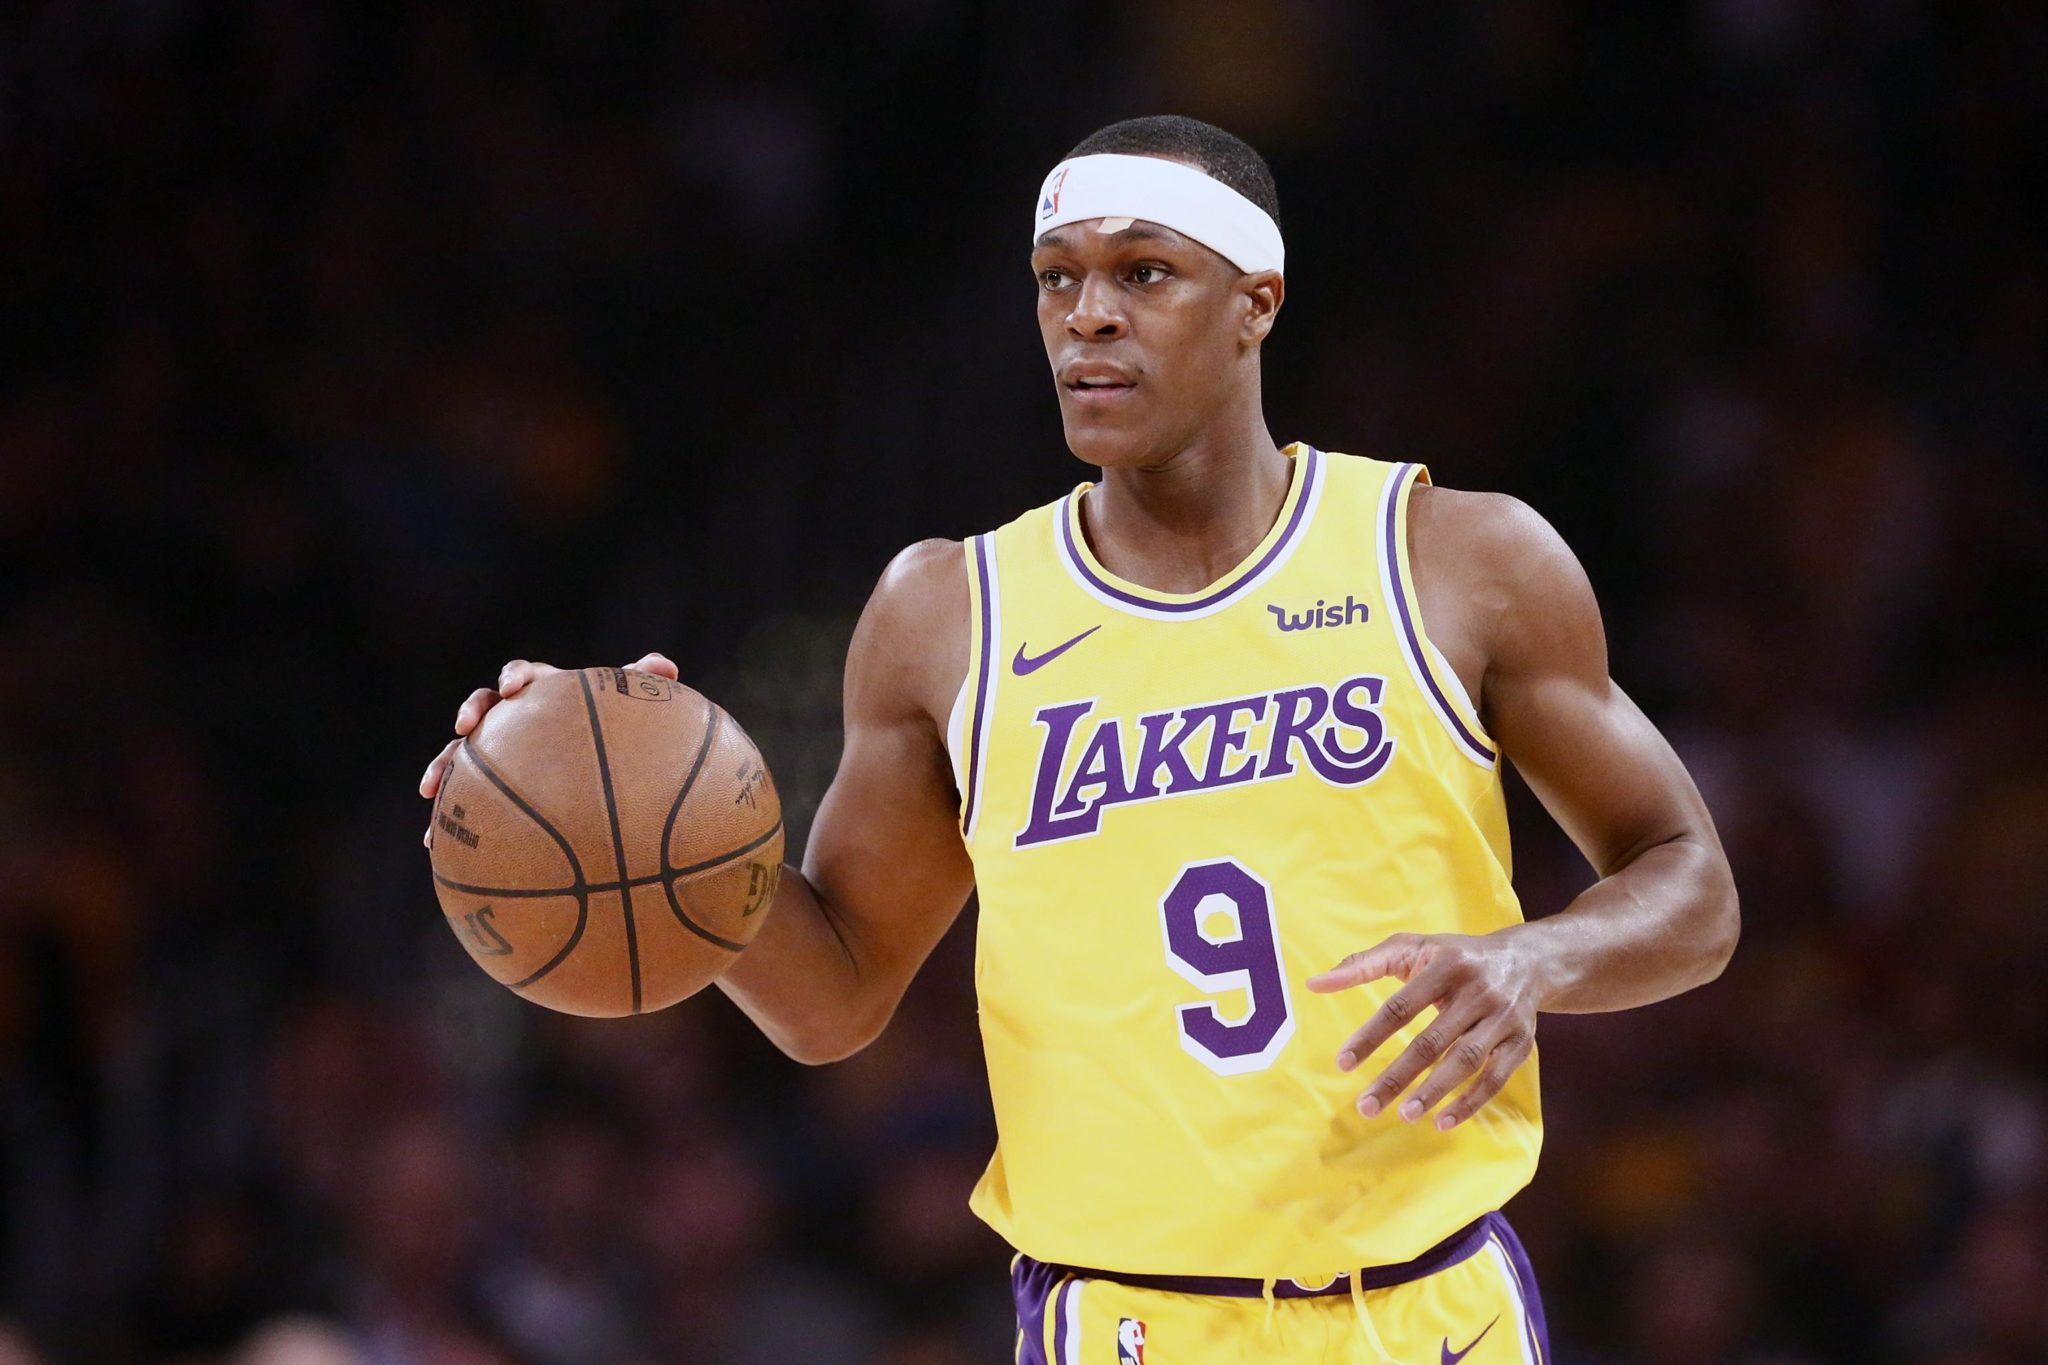 Rajon Rondo Agrees to Buyout With Grizzlies, Plans to Sign With Lakers, Per Report